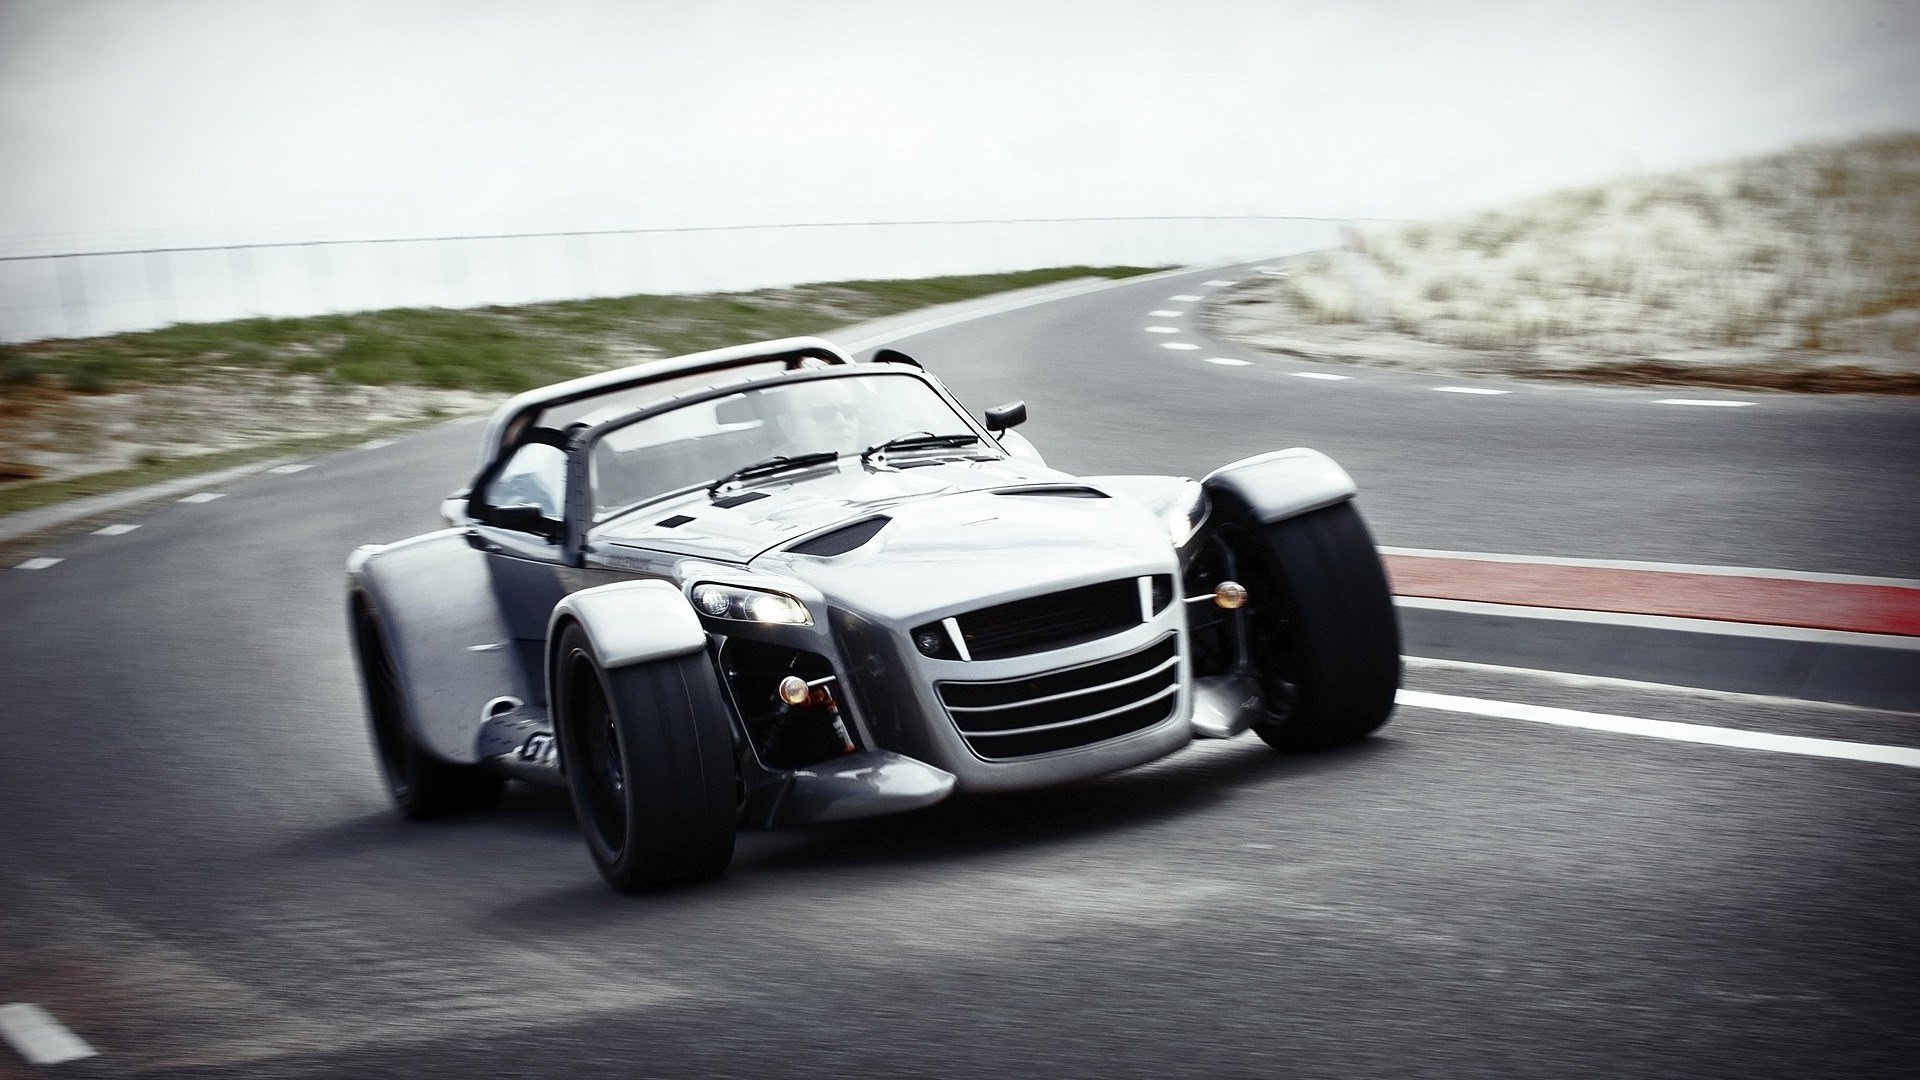 New 2014 Donkervoort D8 Gto Wallpapers Hd Images Wsupercars On This Month